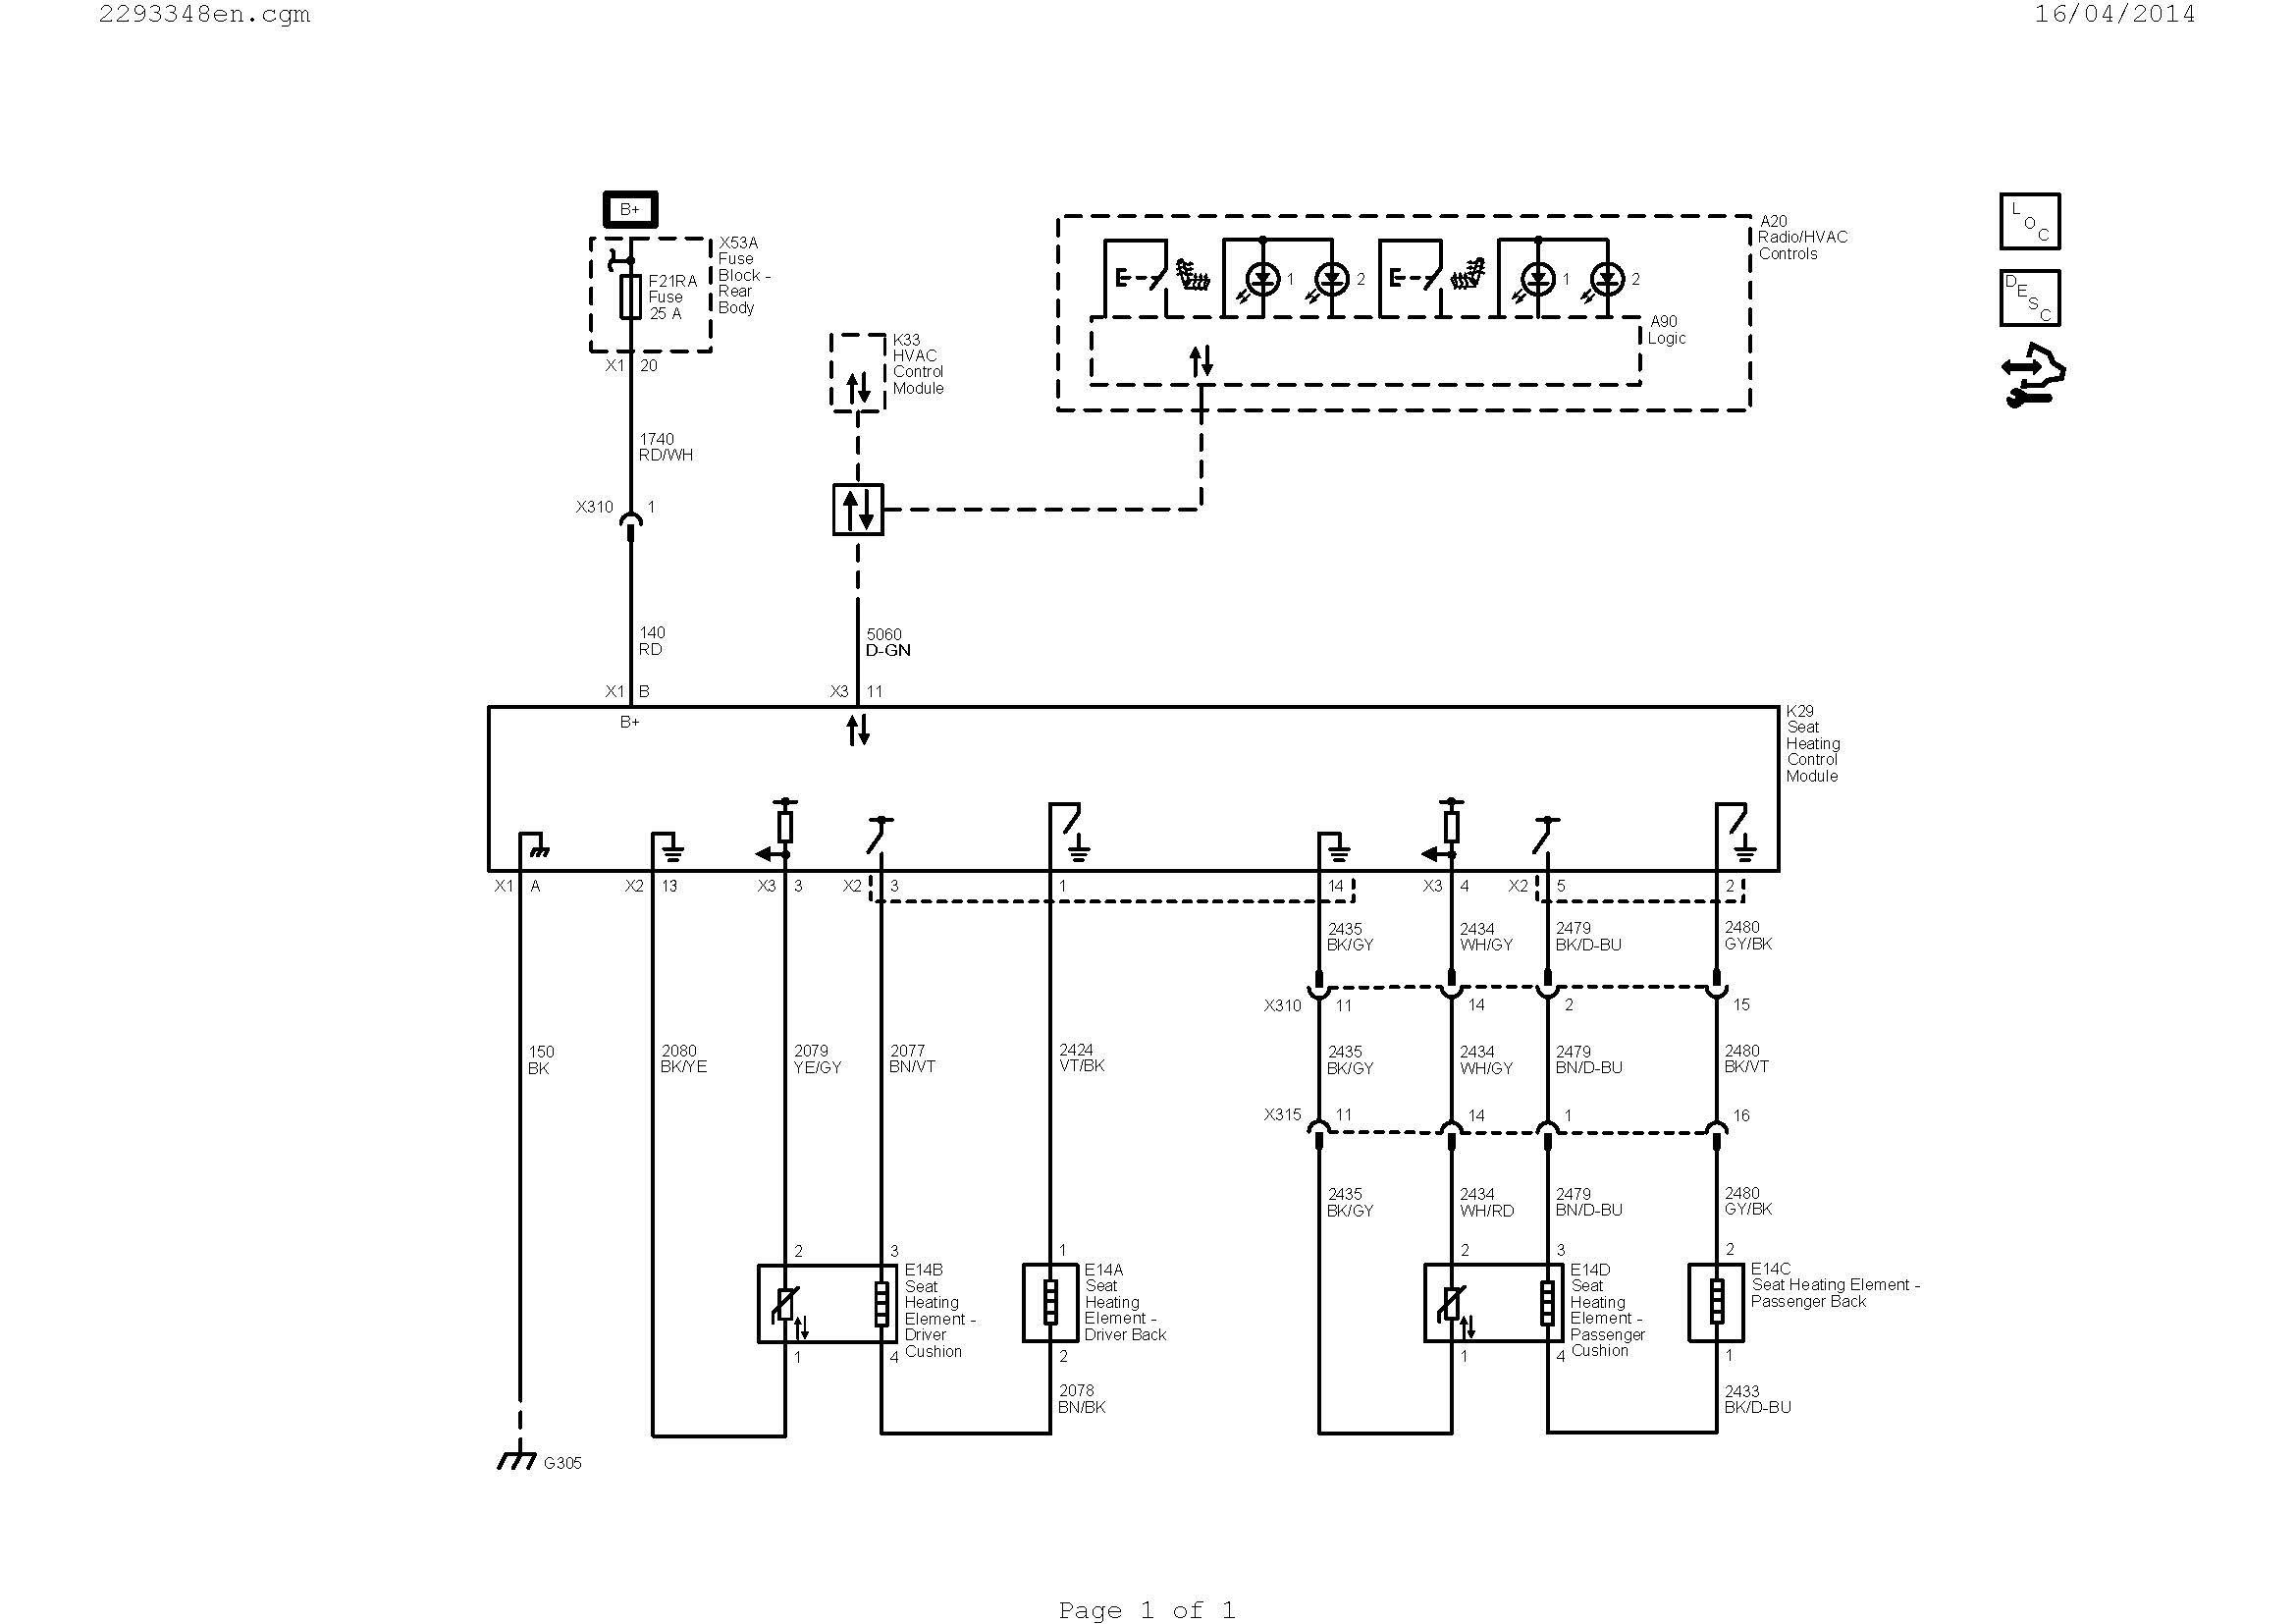 air conditioner wiring diagram Collection-Wiring Diagram Schematic New Wiring Diagram Guitar Fresh Hvac Diagram Best Hvac Diagram 0d 1-d